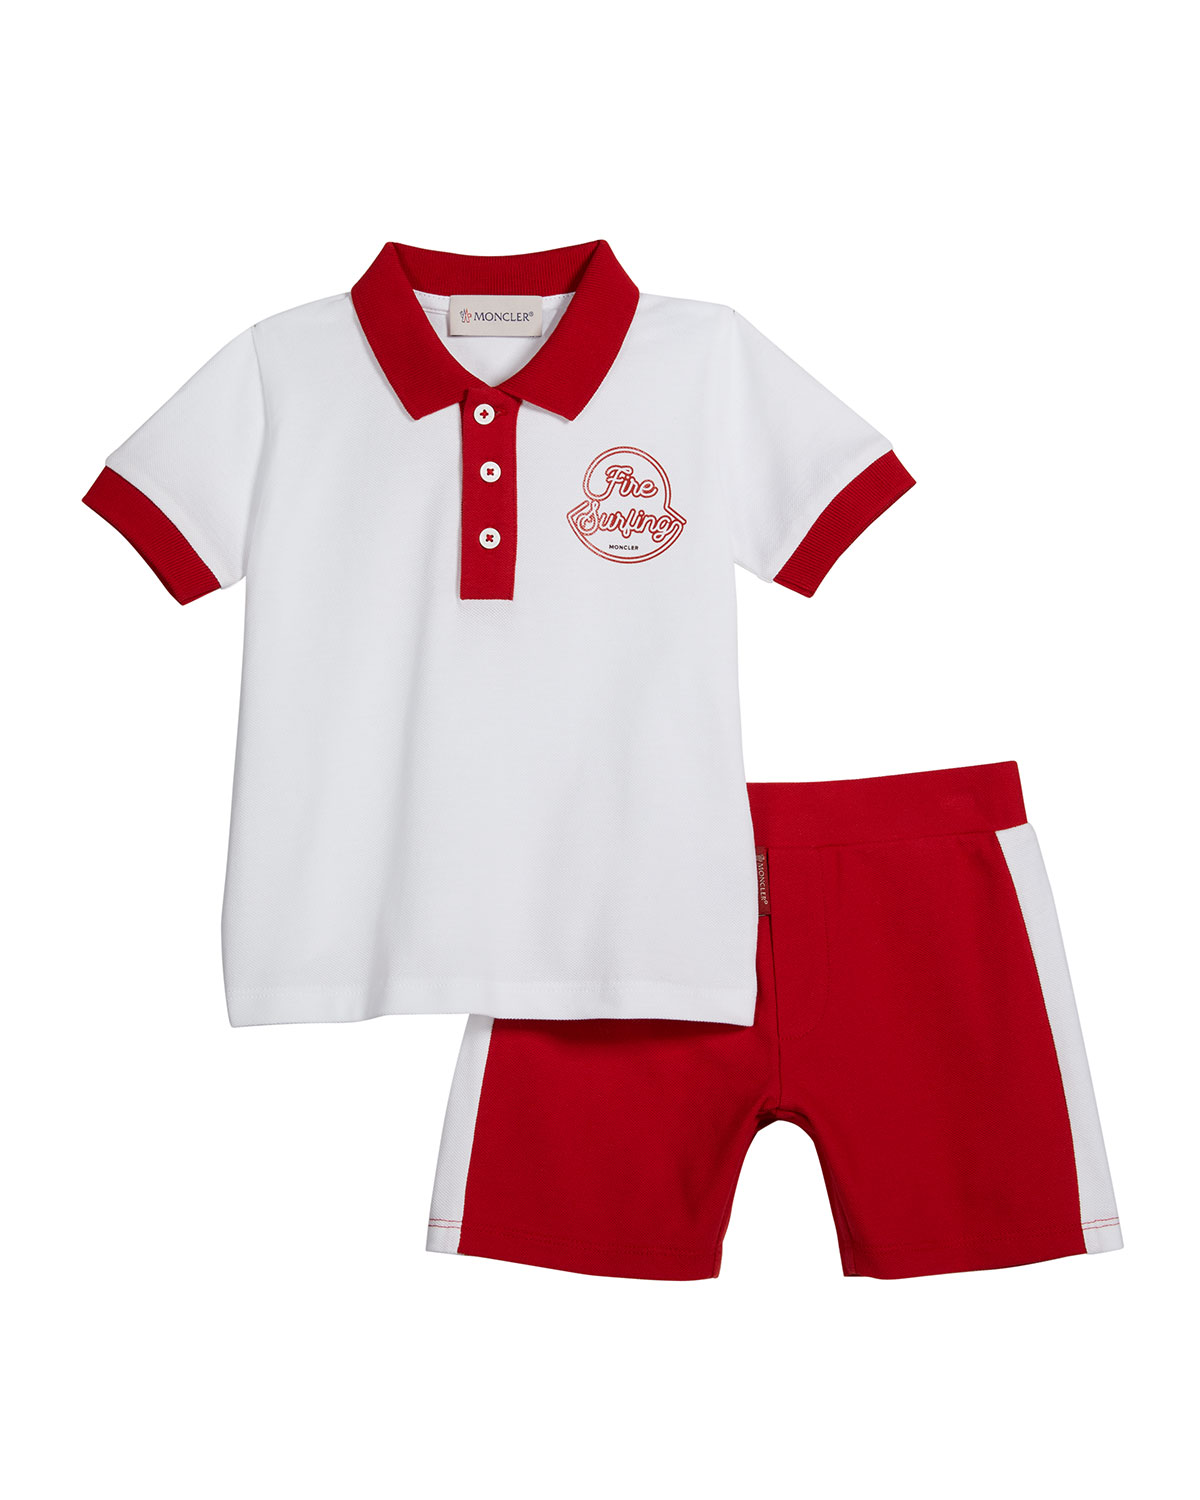 Moncler BOY'S FIRE SURFING COTTON POLO SHIRT W/ SHORTS